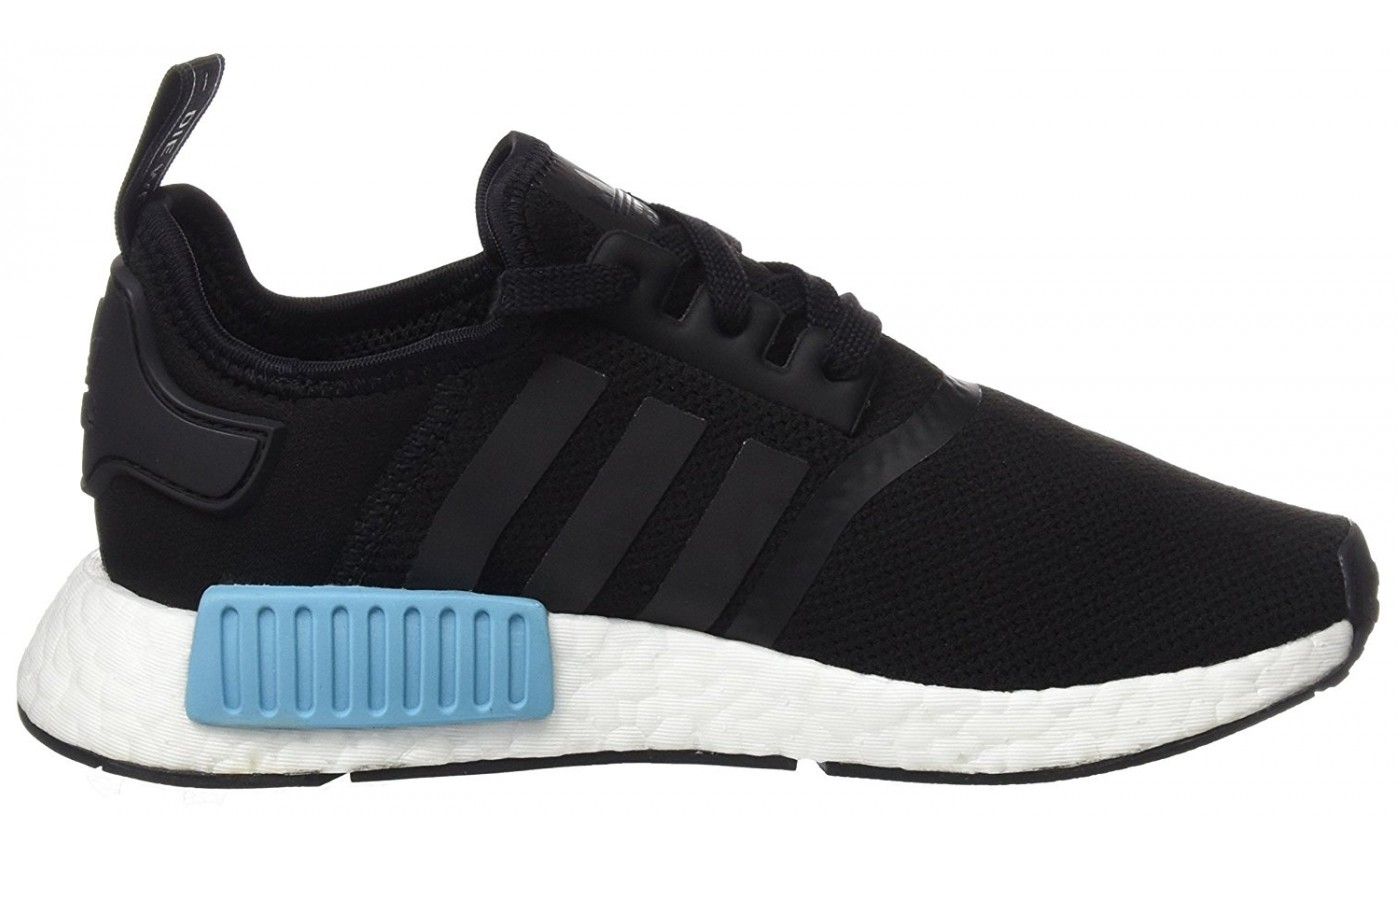 d3913381eca83 Adidas NMD R1 Reviewed   Tested for Performance in 2019